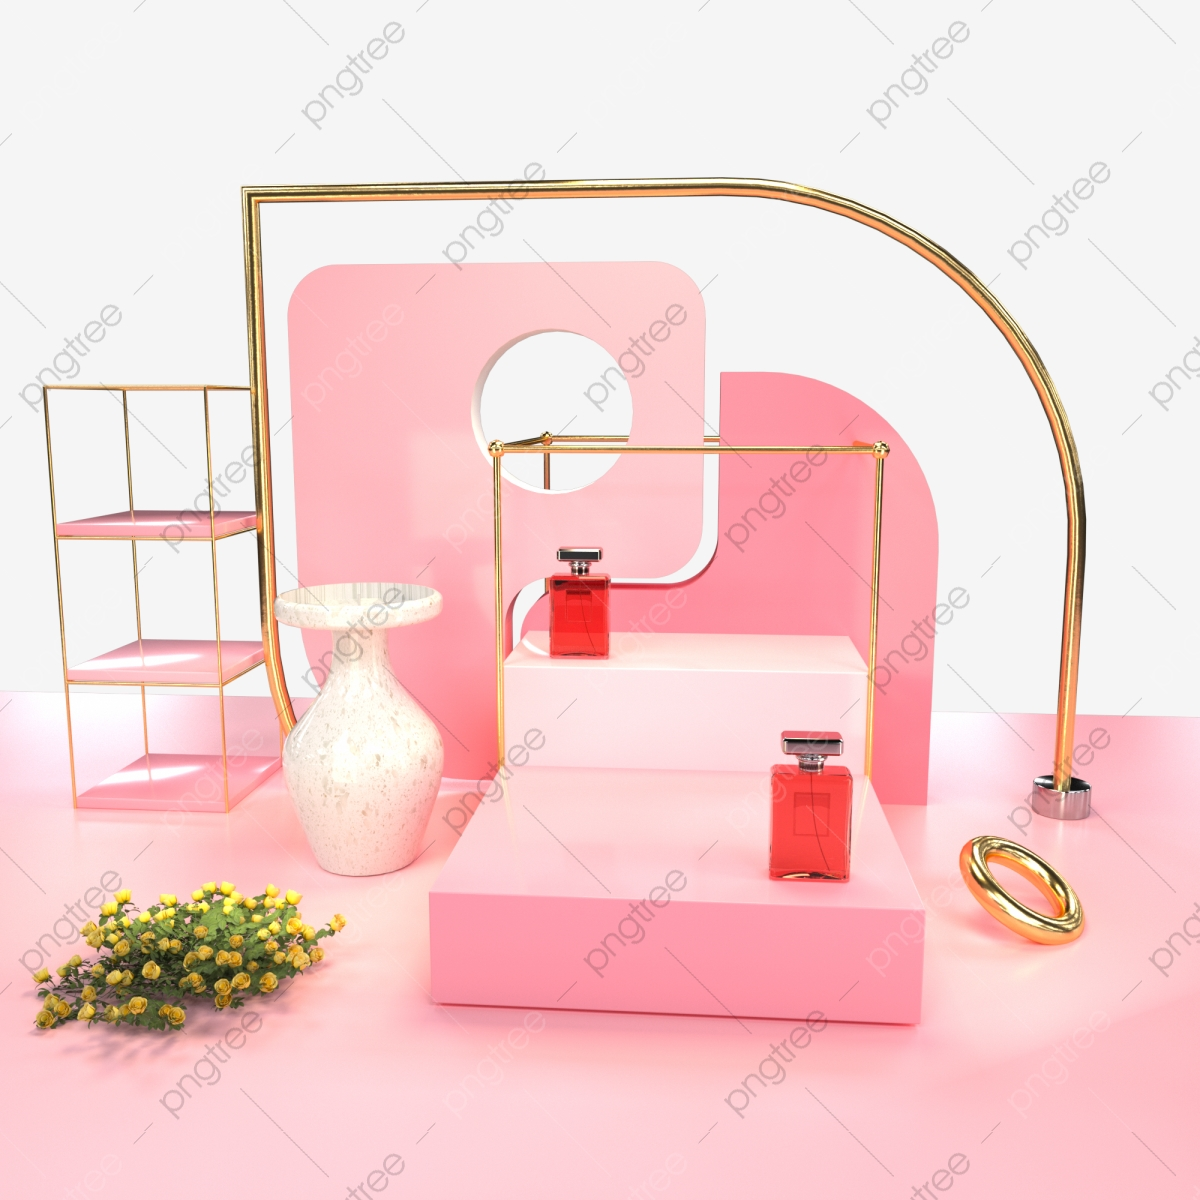 3d Scene Png - Queen S Day 3d Scene, C4d, 3d, Pink PNG Transparent Clipart Image ...